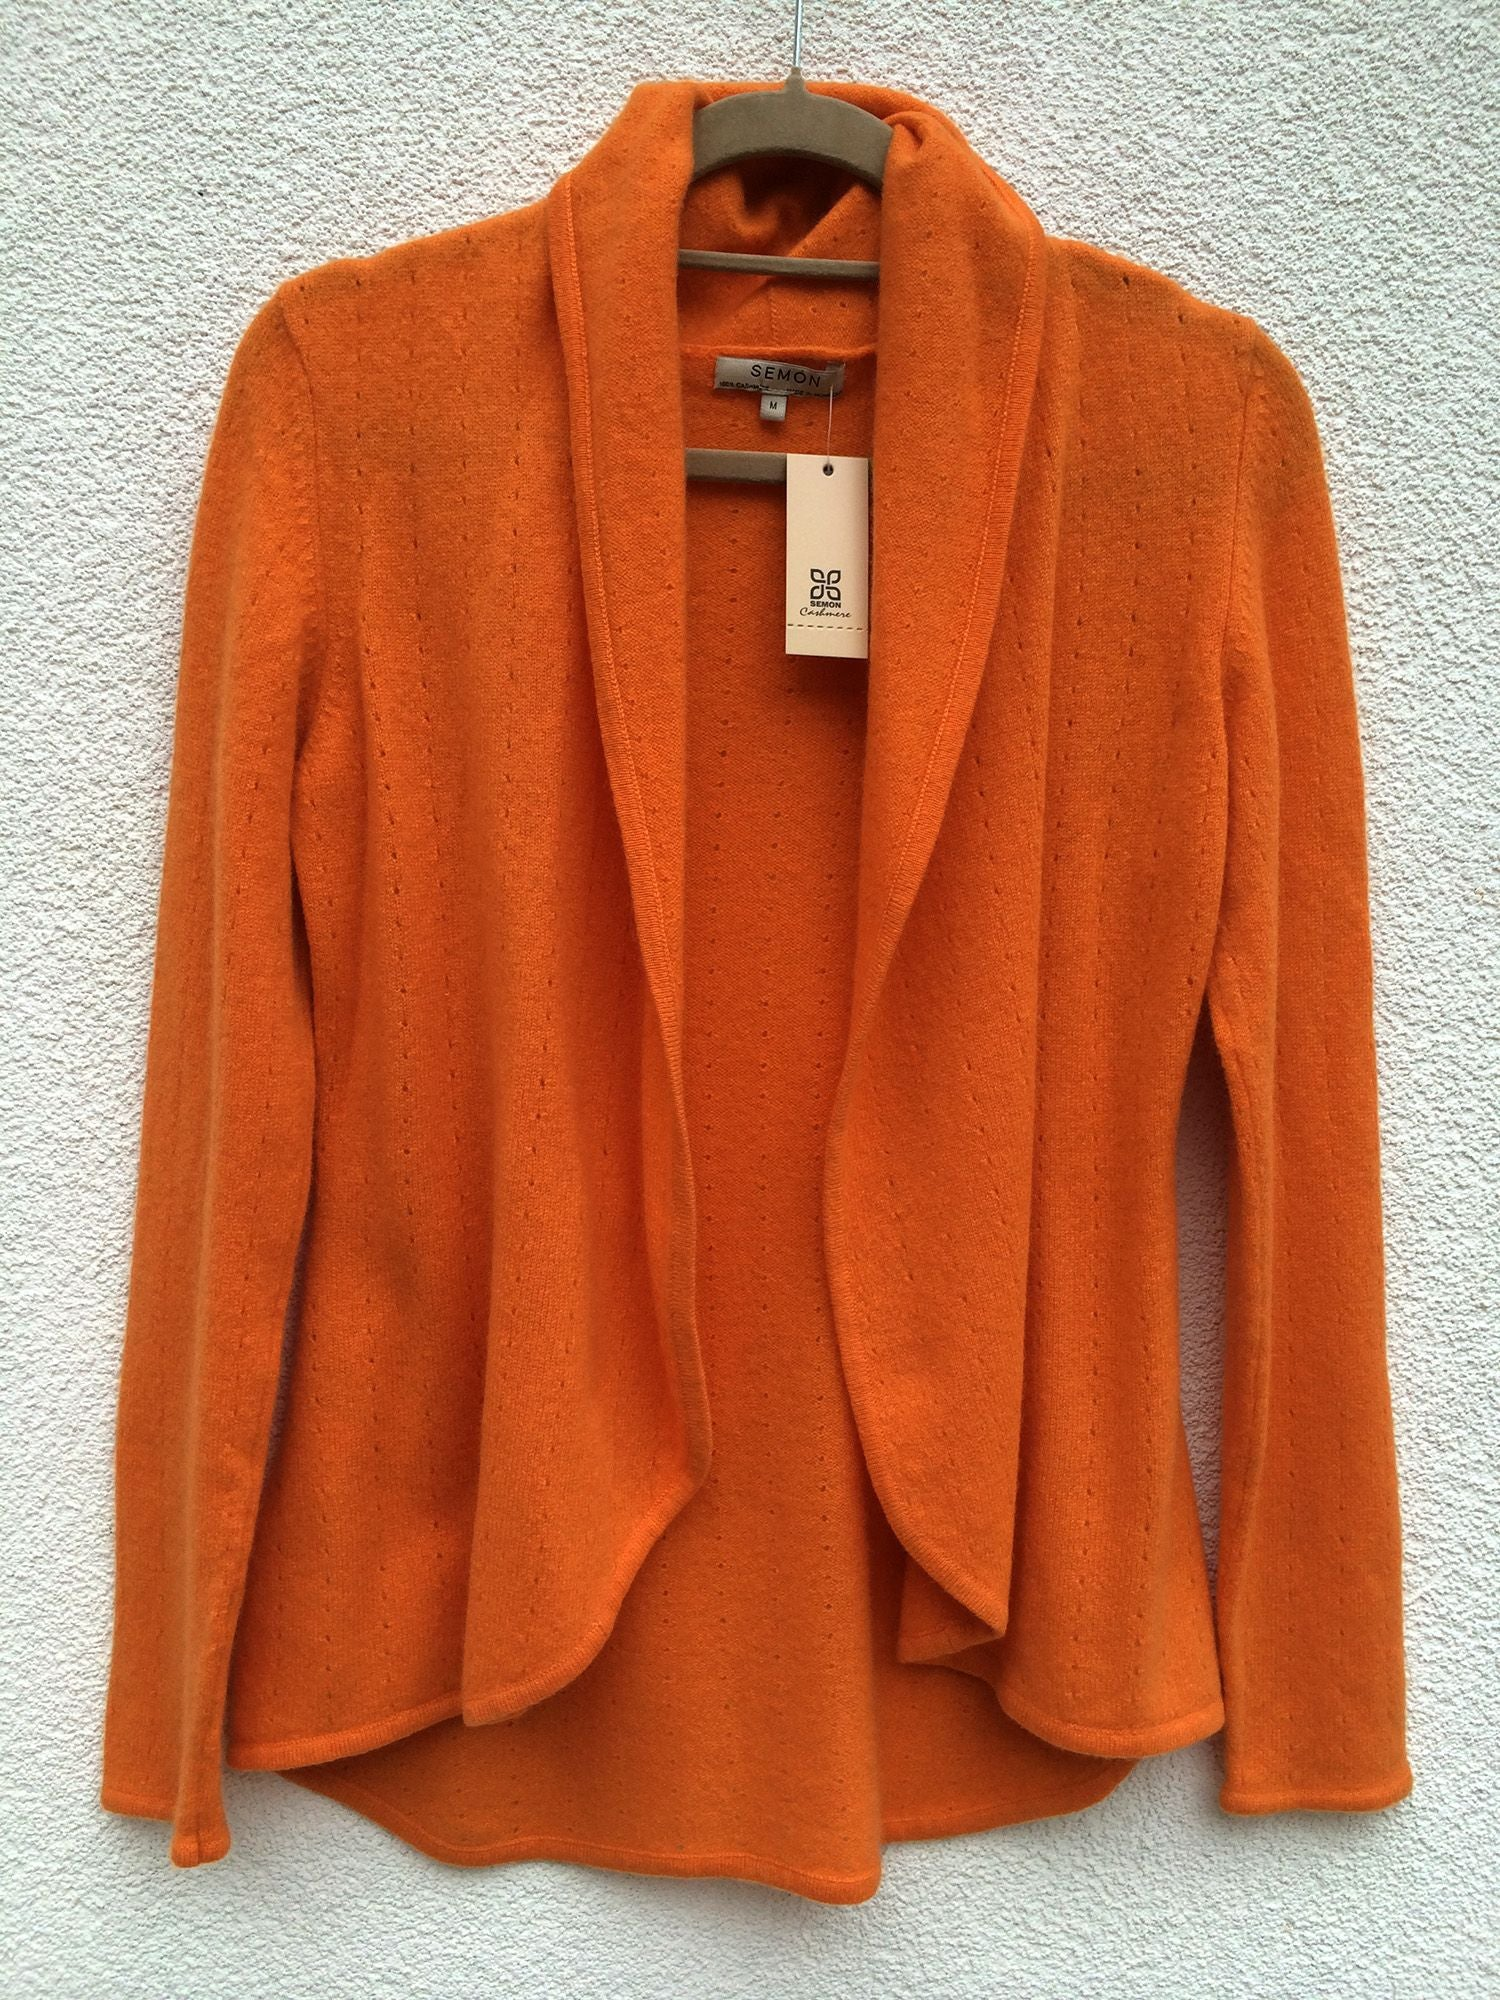 Burnt orange women's luxury Cashmere cardigan jacket, ladies light weight summer cardigan, open front tailored jacket, fitted shawl neck collared elegant cardigan sale, open V-neck sweater knit London UK | SEMON Cashmere